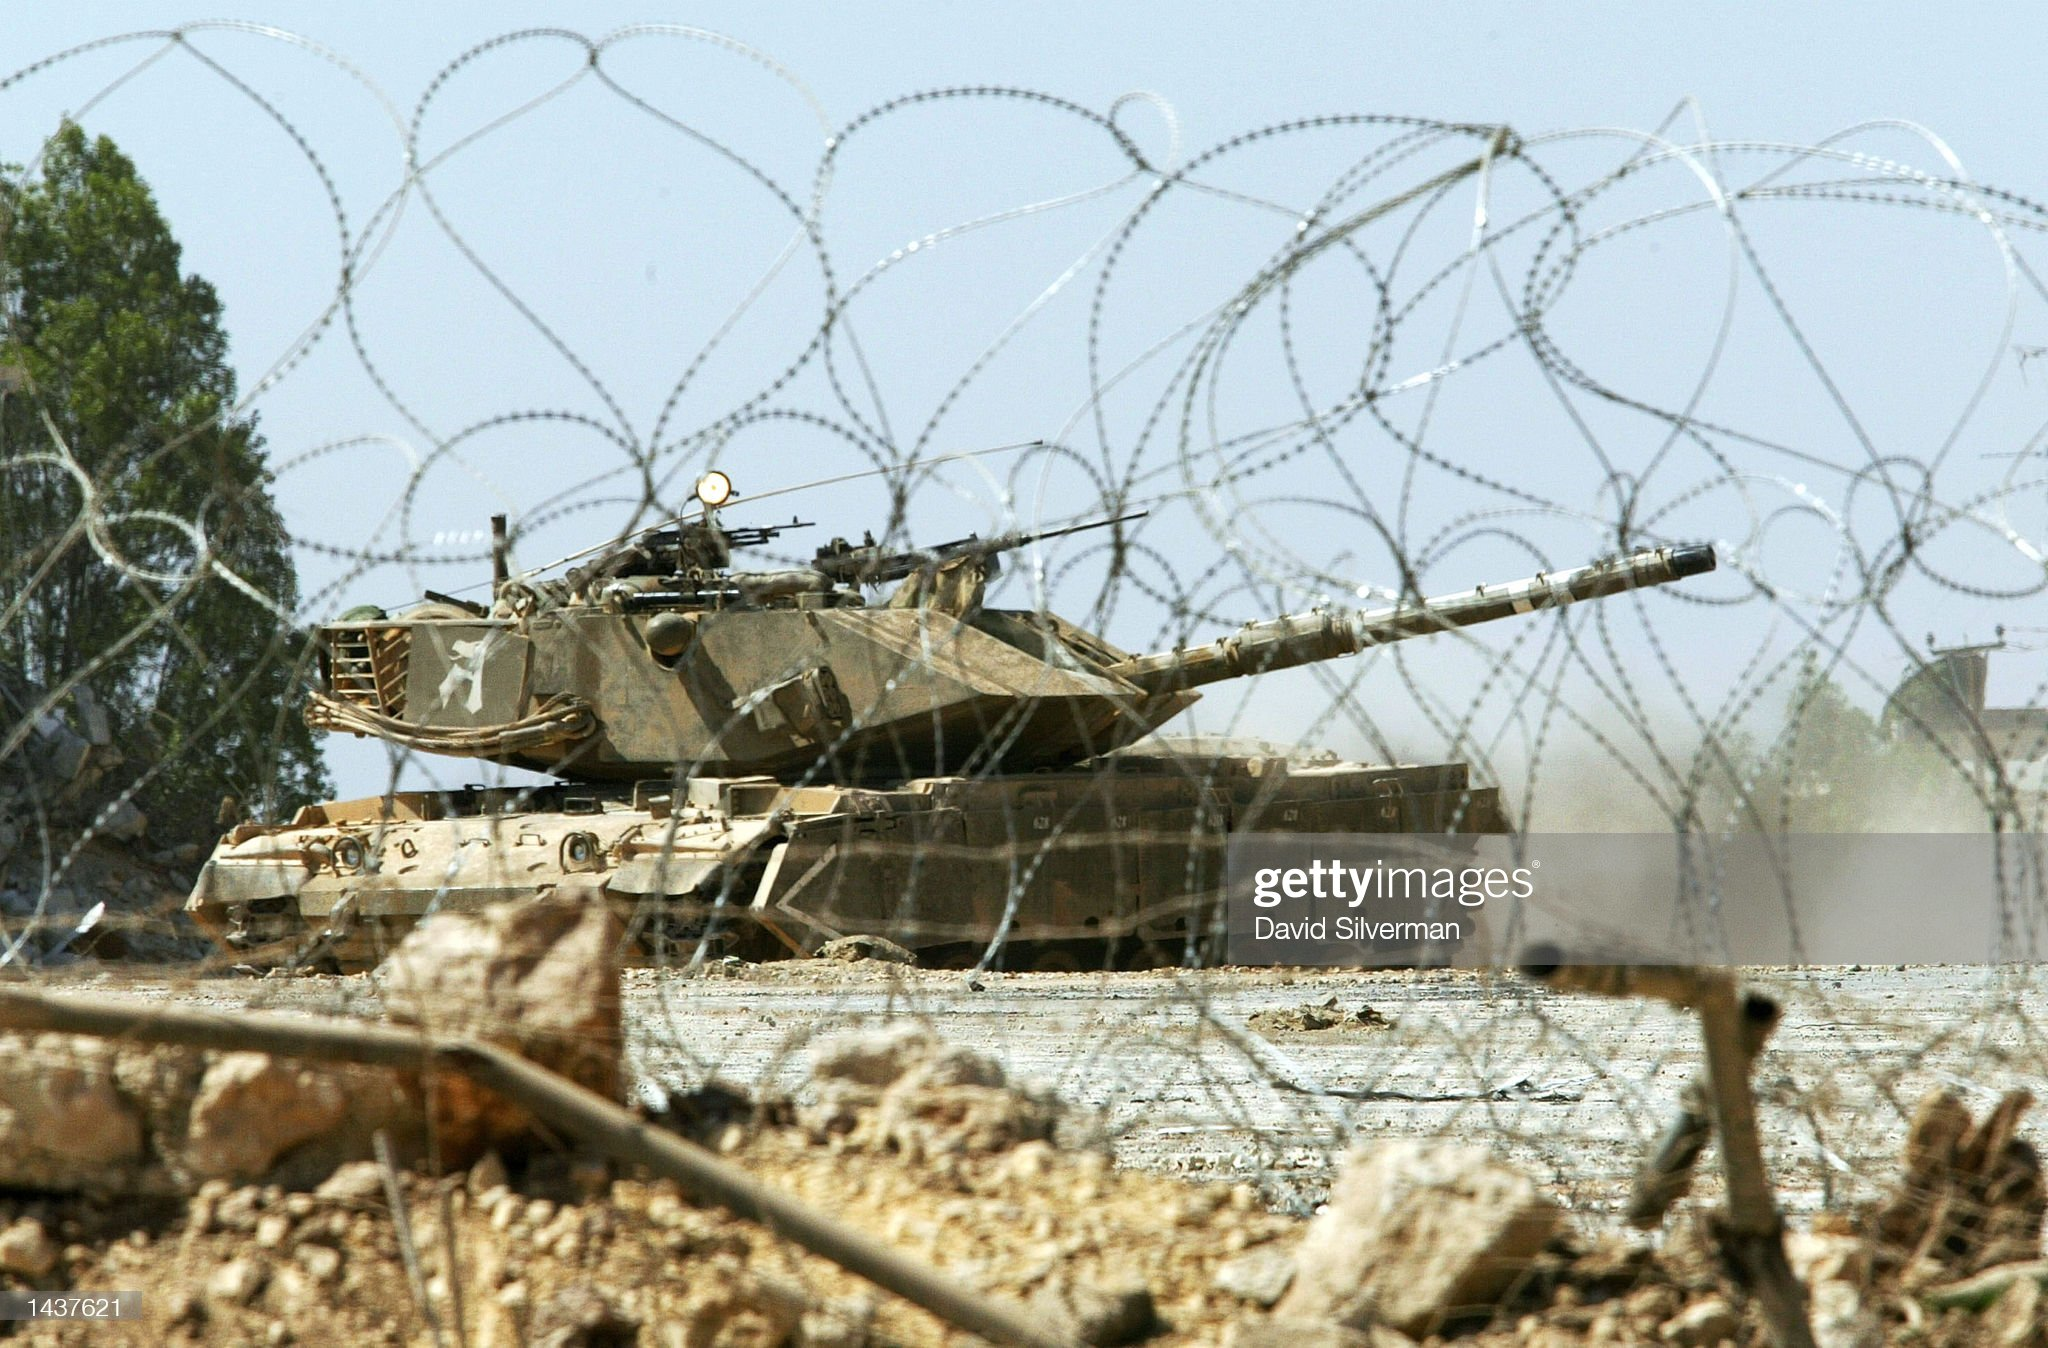 https://media.gettyimages.com/photos/the-last-israeli-tank-reverses-as-it-covers-the-israeli-army-out-of-picture-id1437621?s=2048x2048